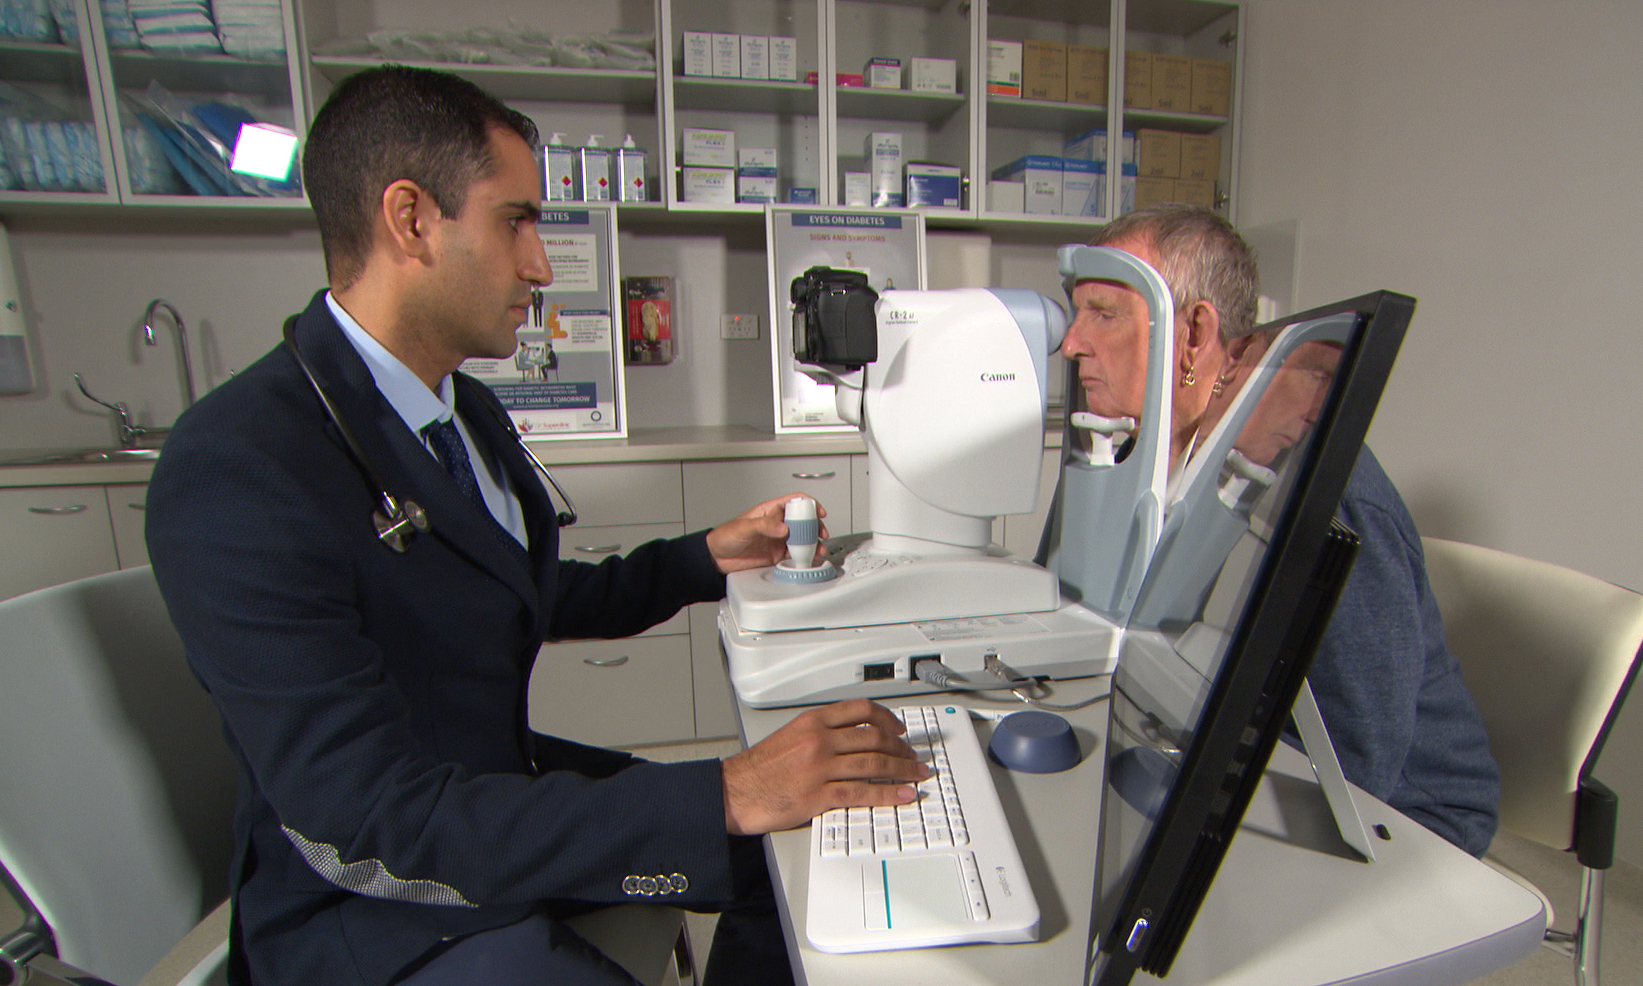 Dr Aly Khanbhai uses the new eye scanning tech on Midland patient.